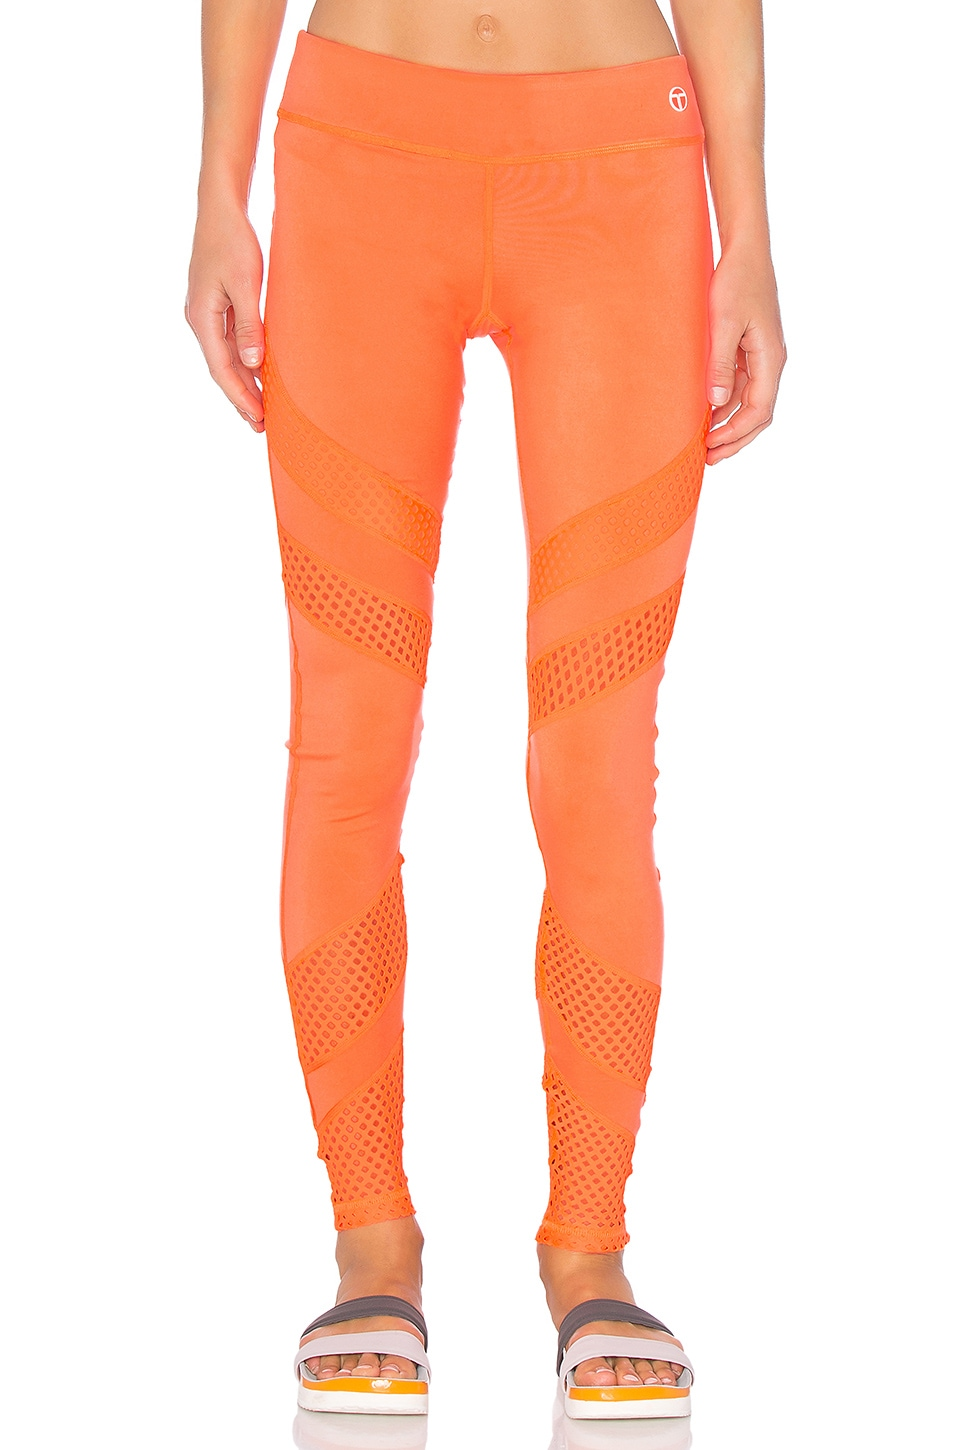 Lazer Cut Solids Legging by Trina Turk